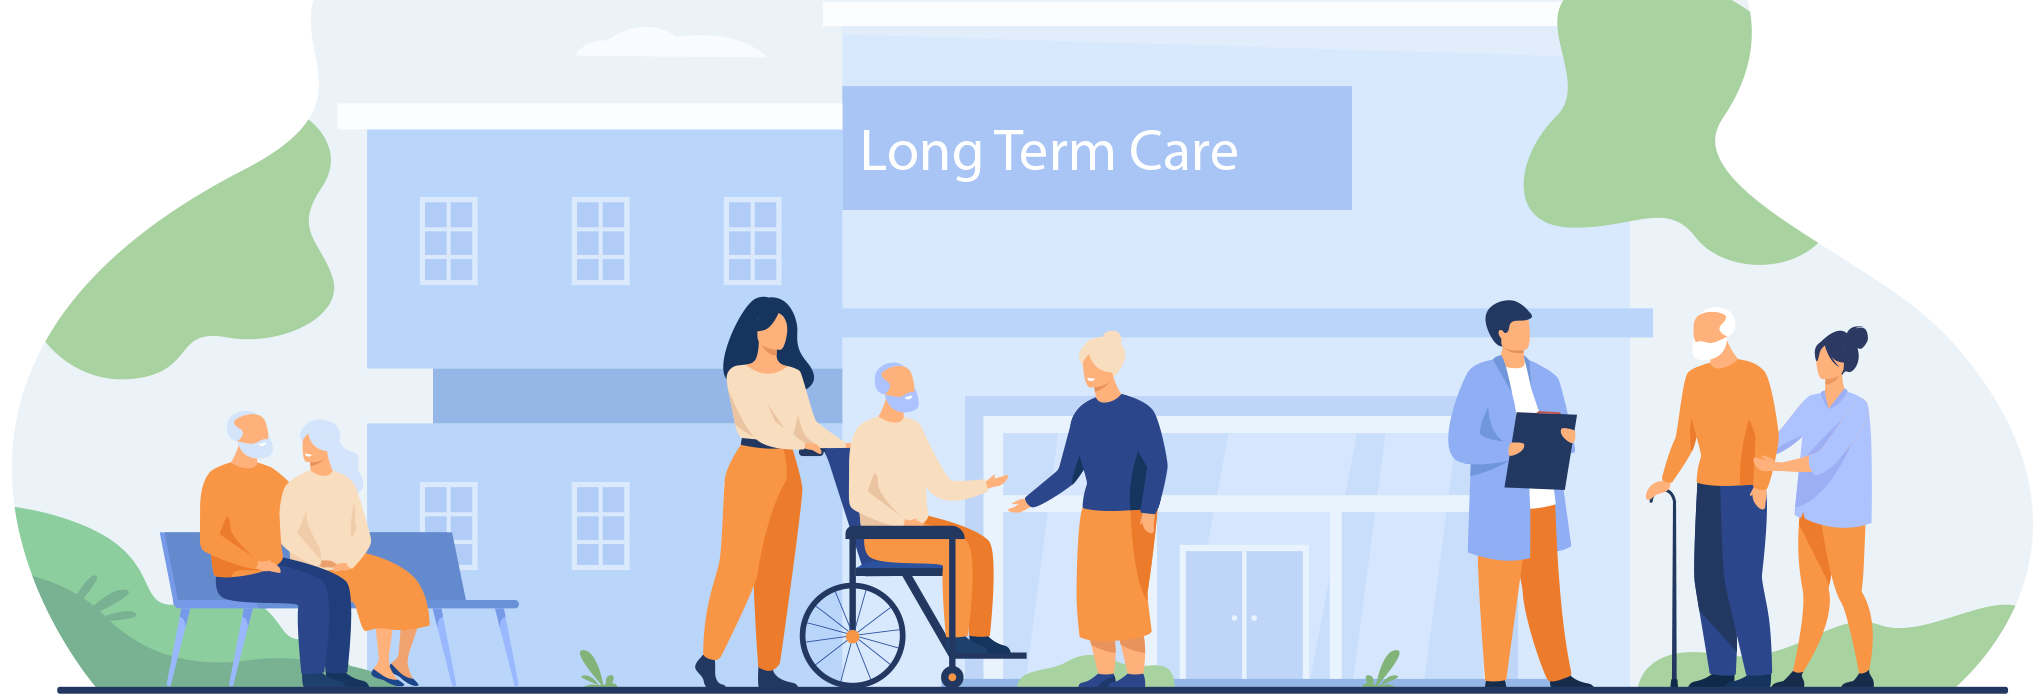 What is a long term care pharmacy